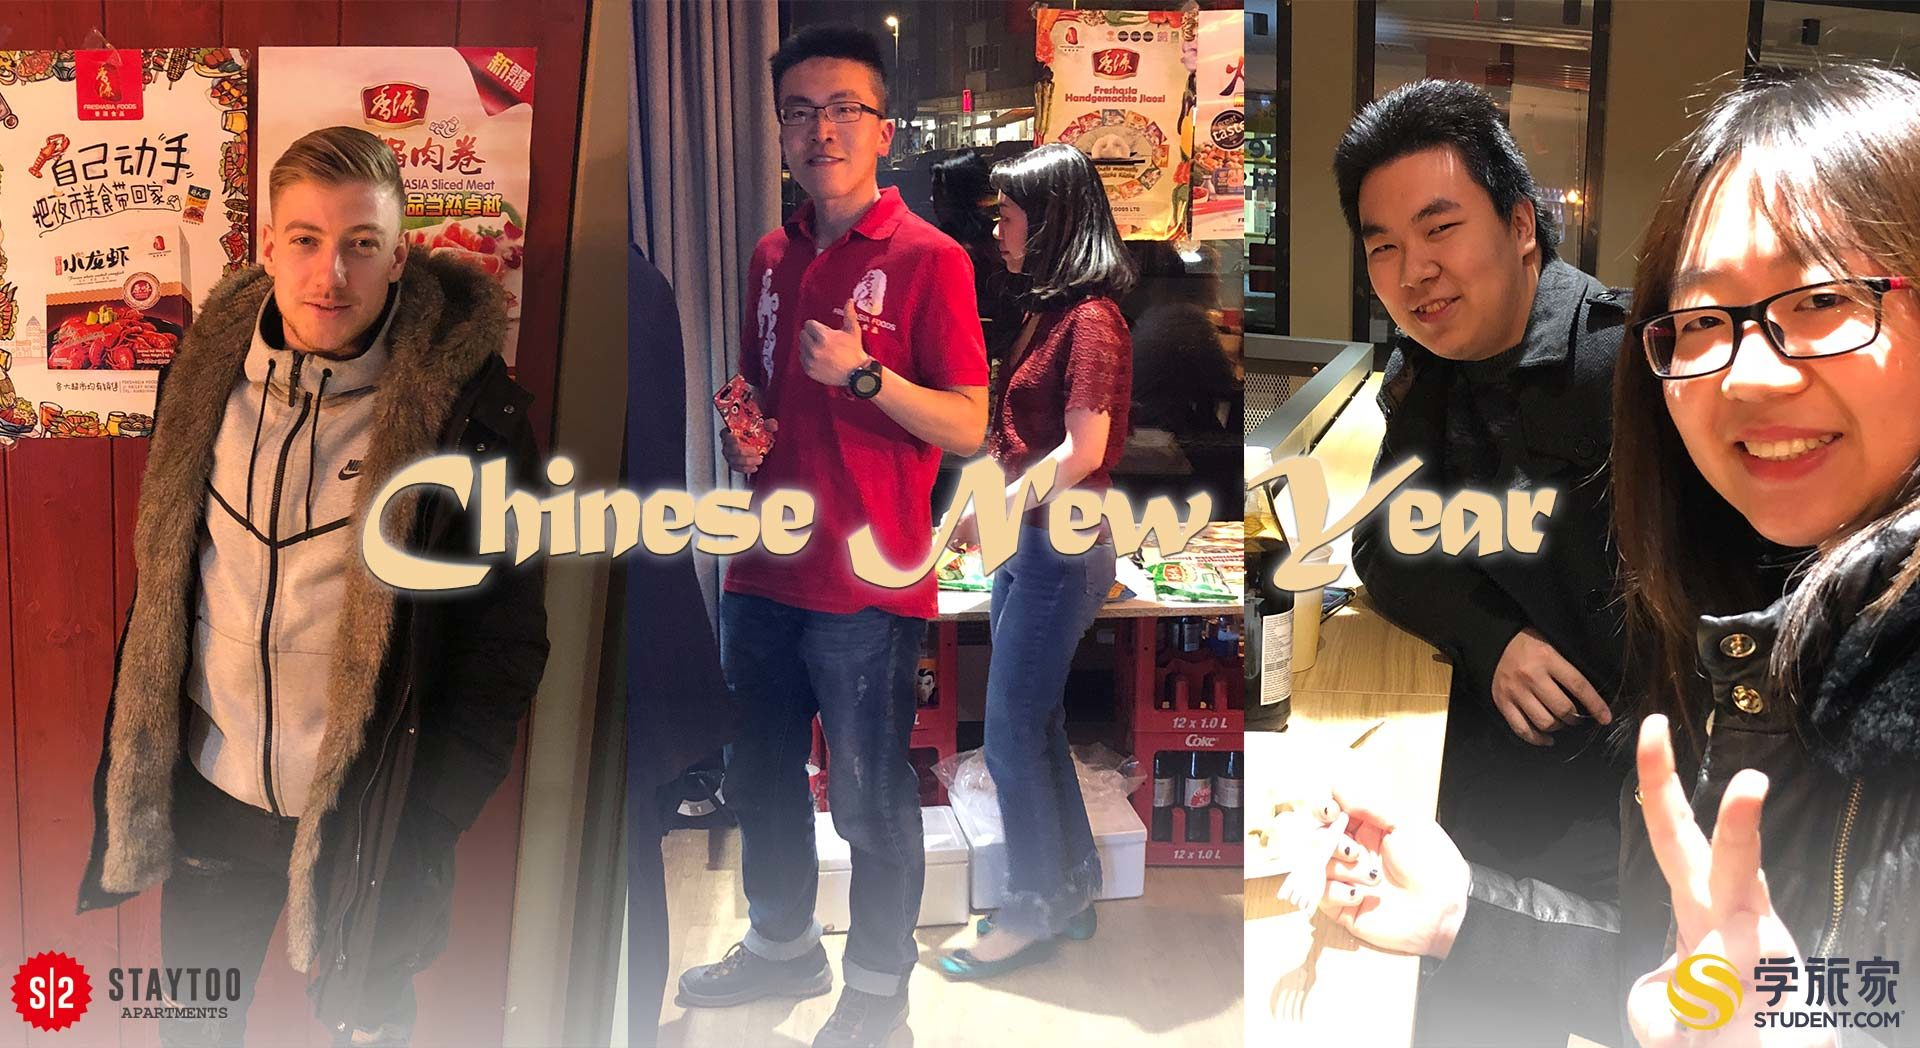 chinese-new-year-people-newsletter